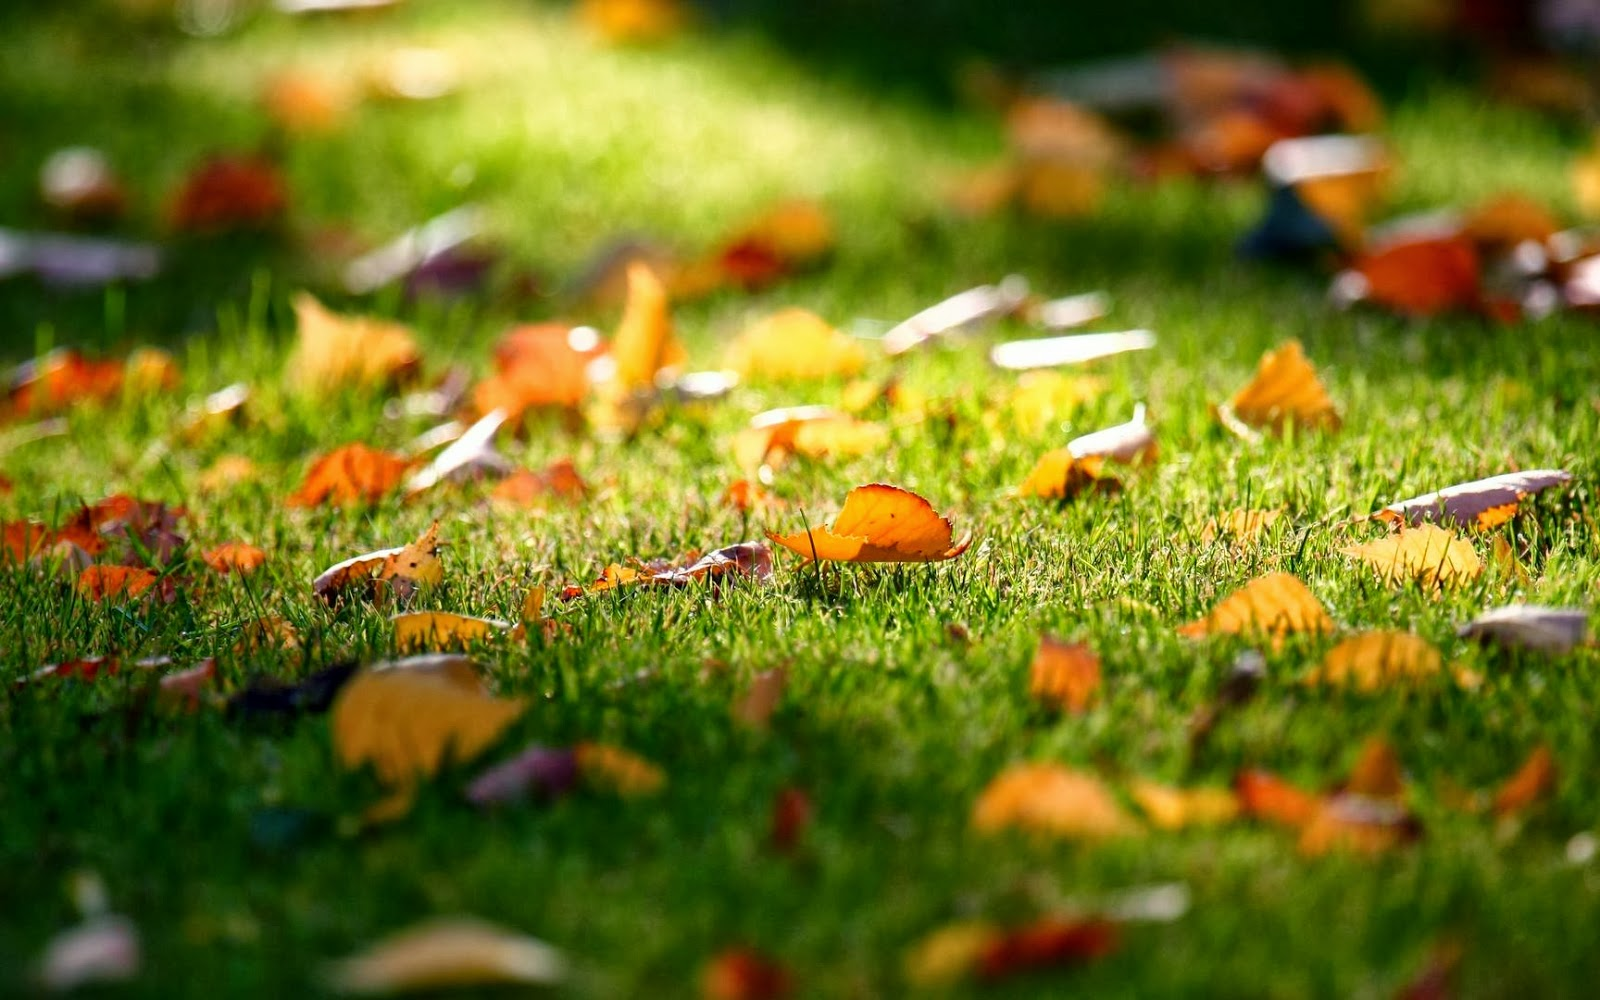 Falling-Leaves-Wallpaper-525436.jpg